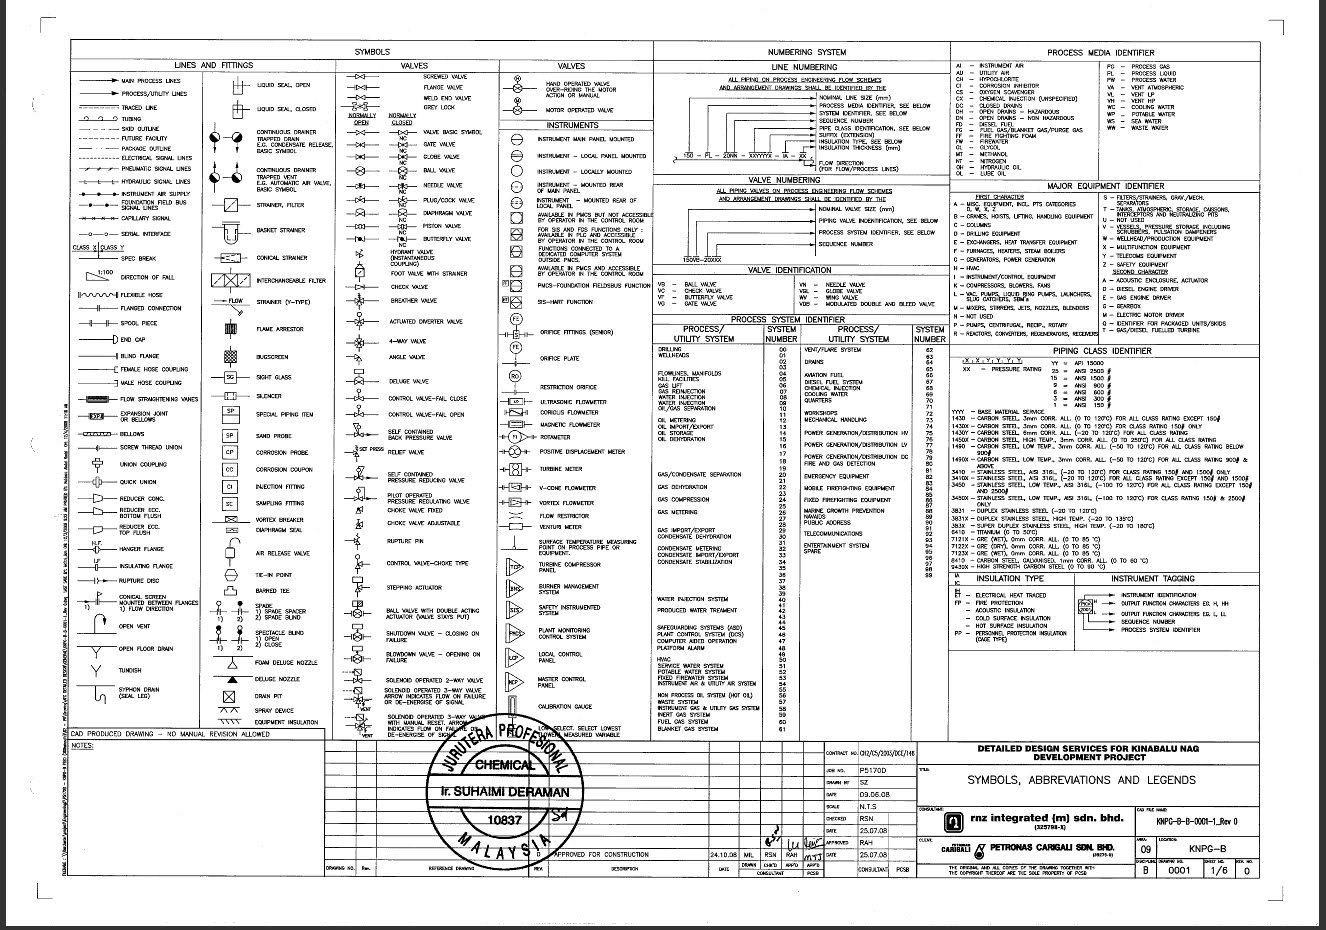 building electrical wiring diagram symbol legend butterfly lighting drafting symbols best library gas valve drawing images